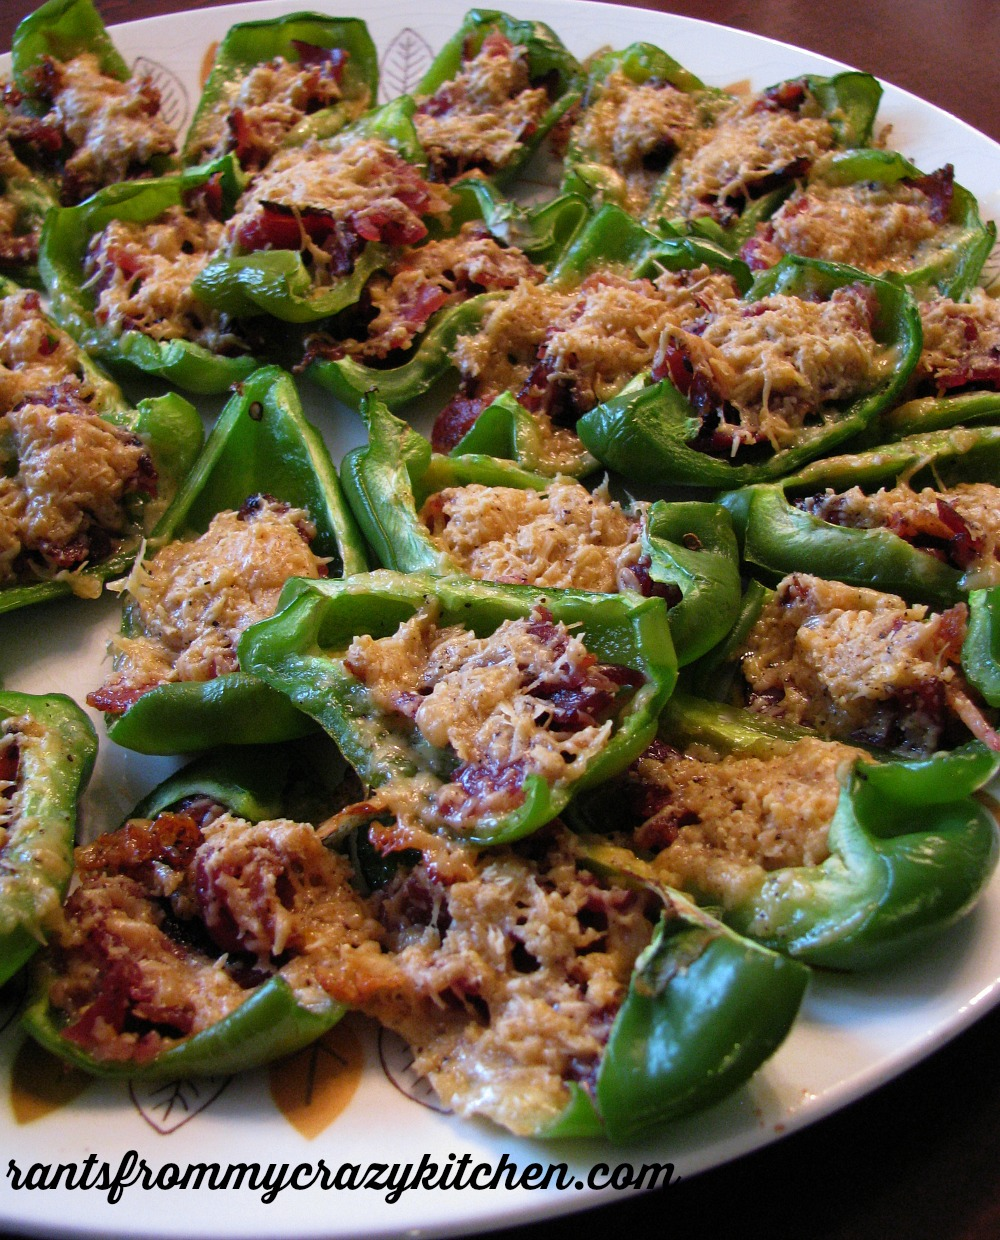 Sweet bell peppers stuffed with a simple mixture of bacon and Gouda cheese. Great for the mild-loving crowd, or add a pinch of cayenne for heat!